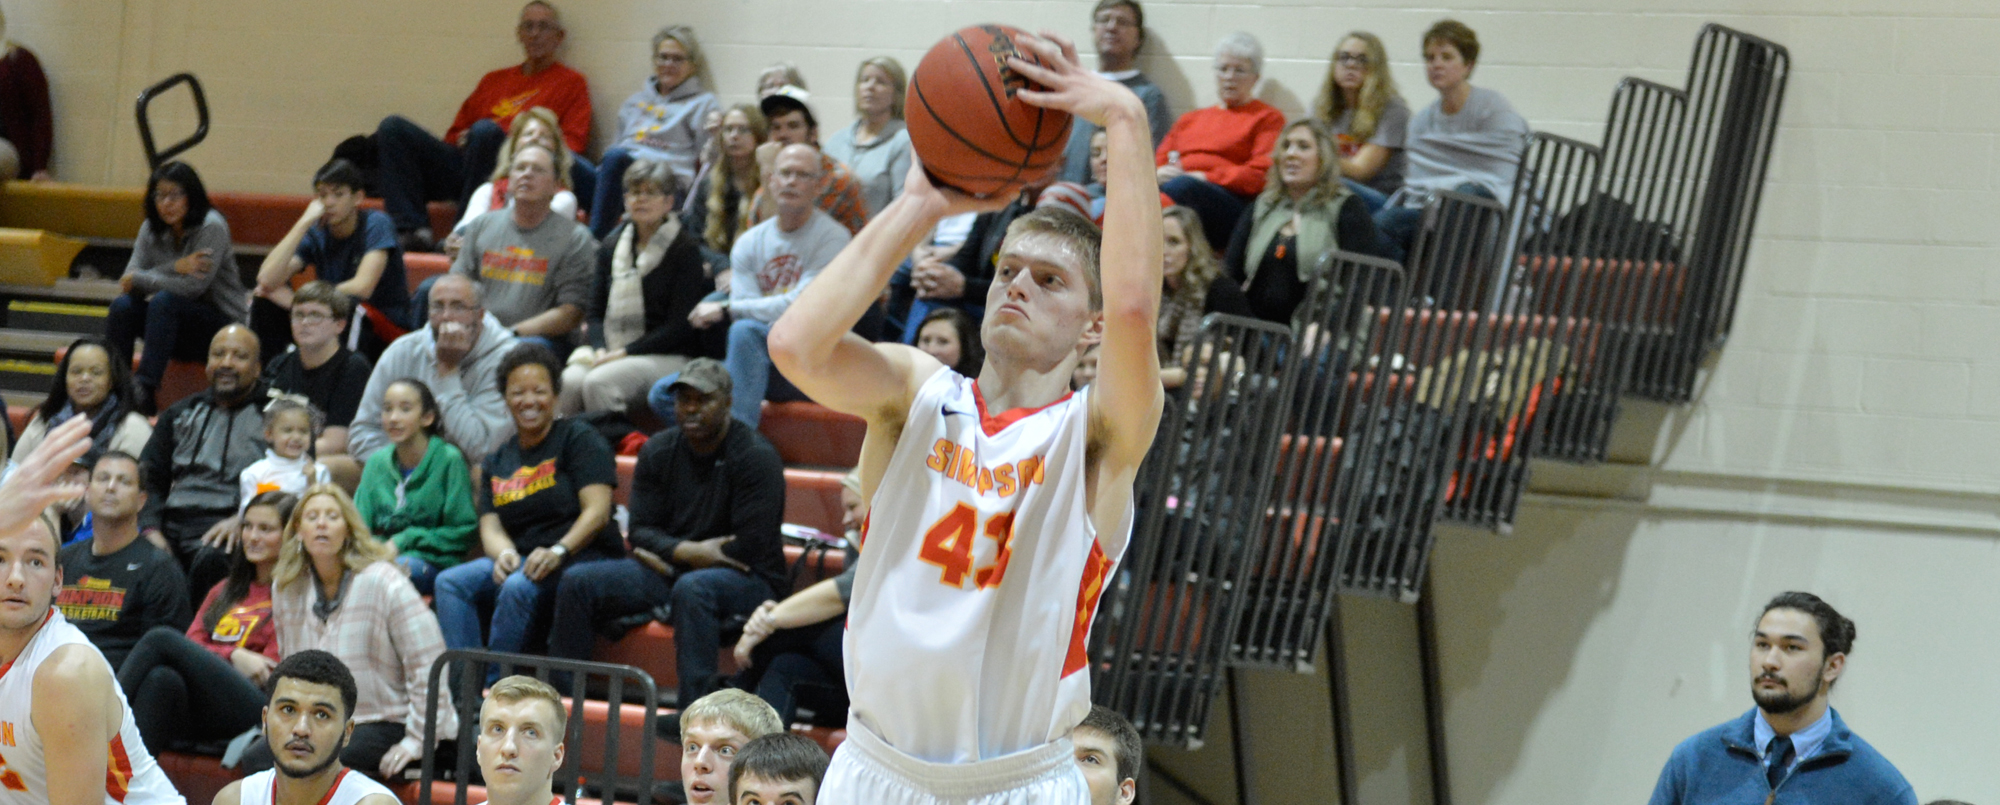 Jamie Montgomery scored 11 points in the Storm's 80-65 loss to Dubuque.